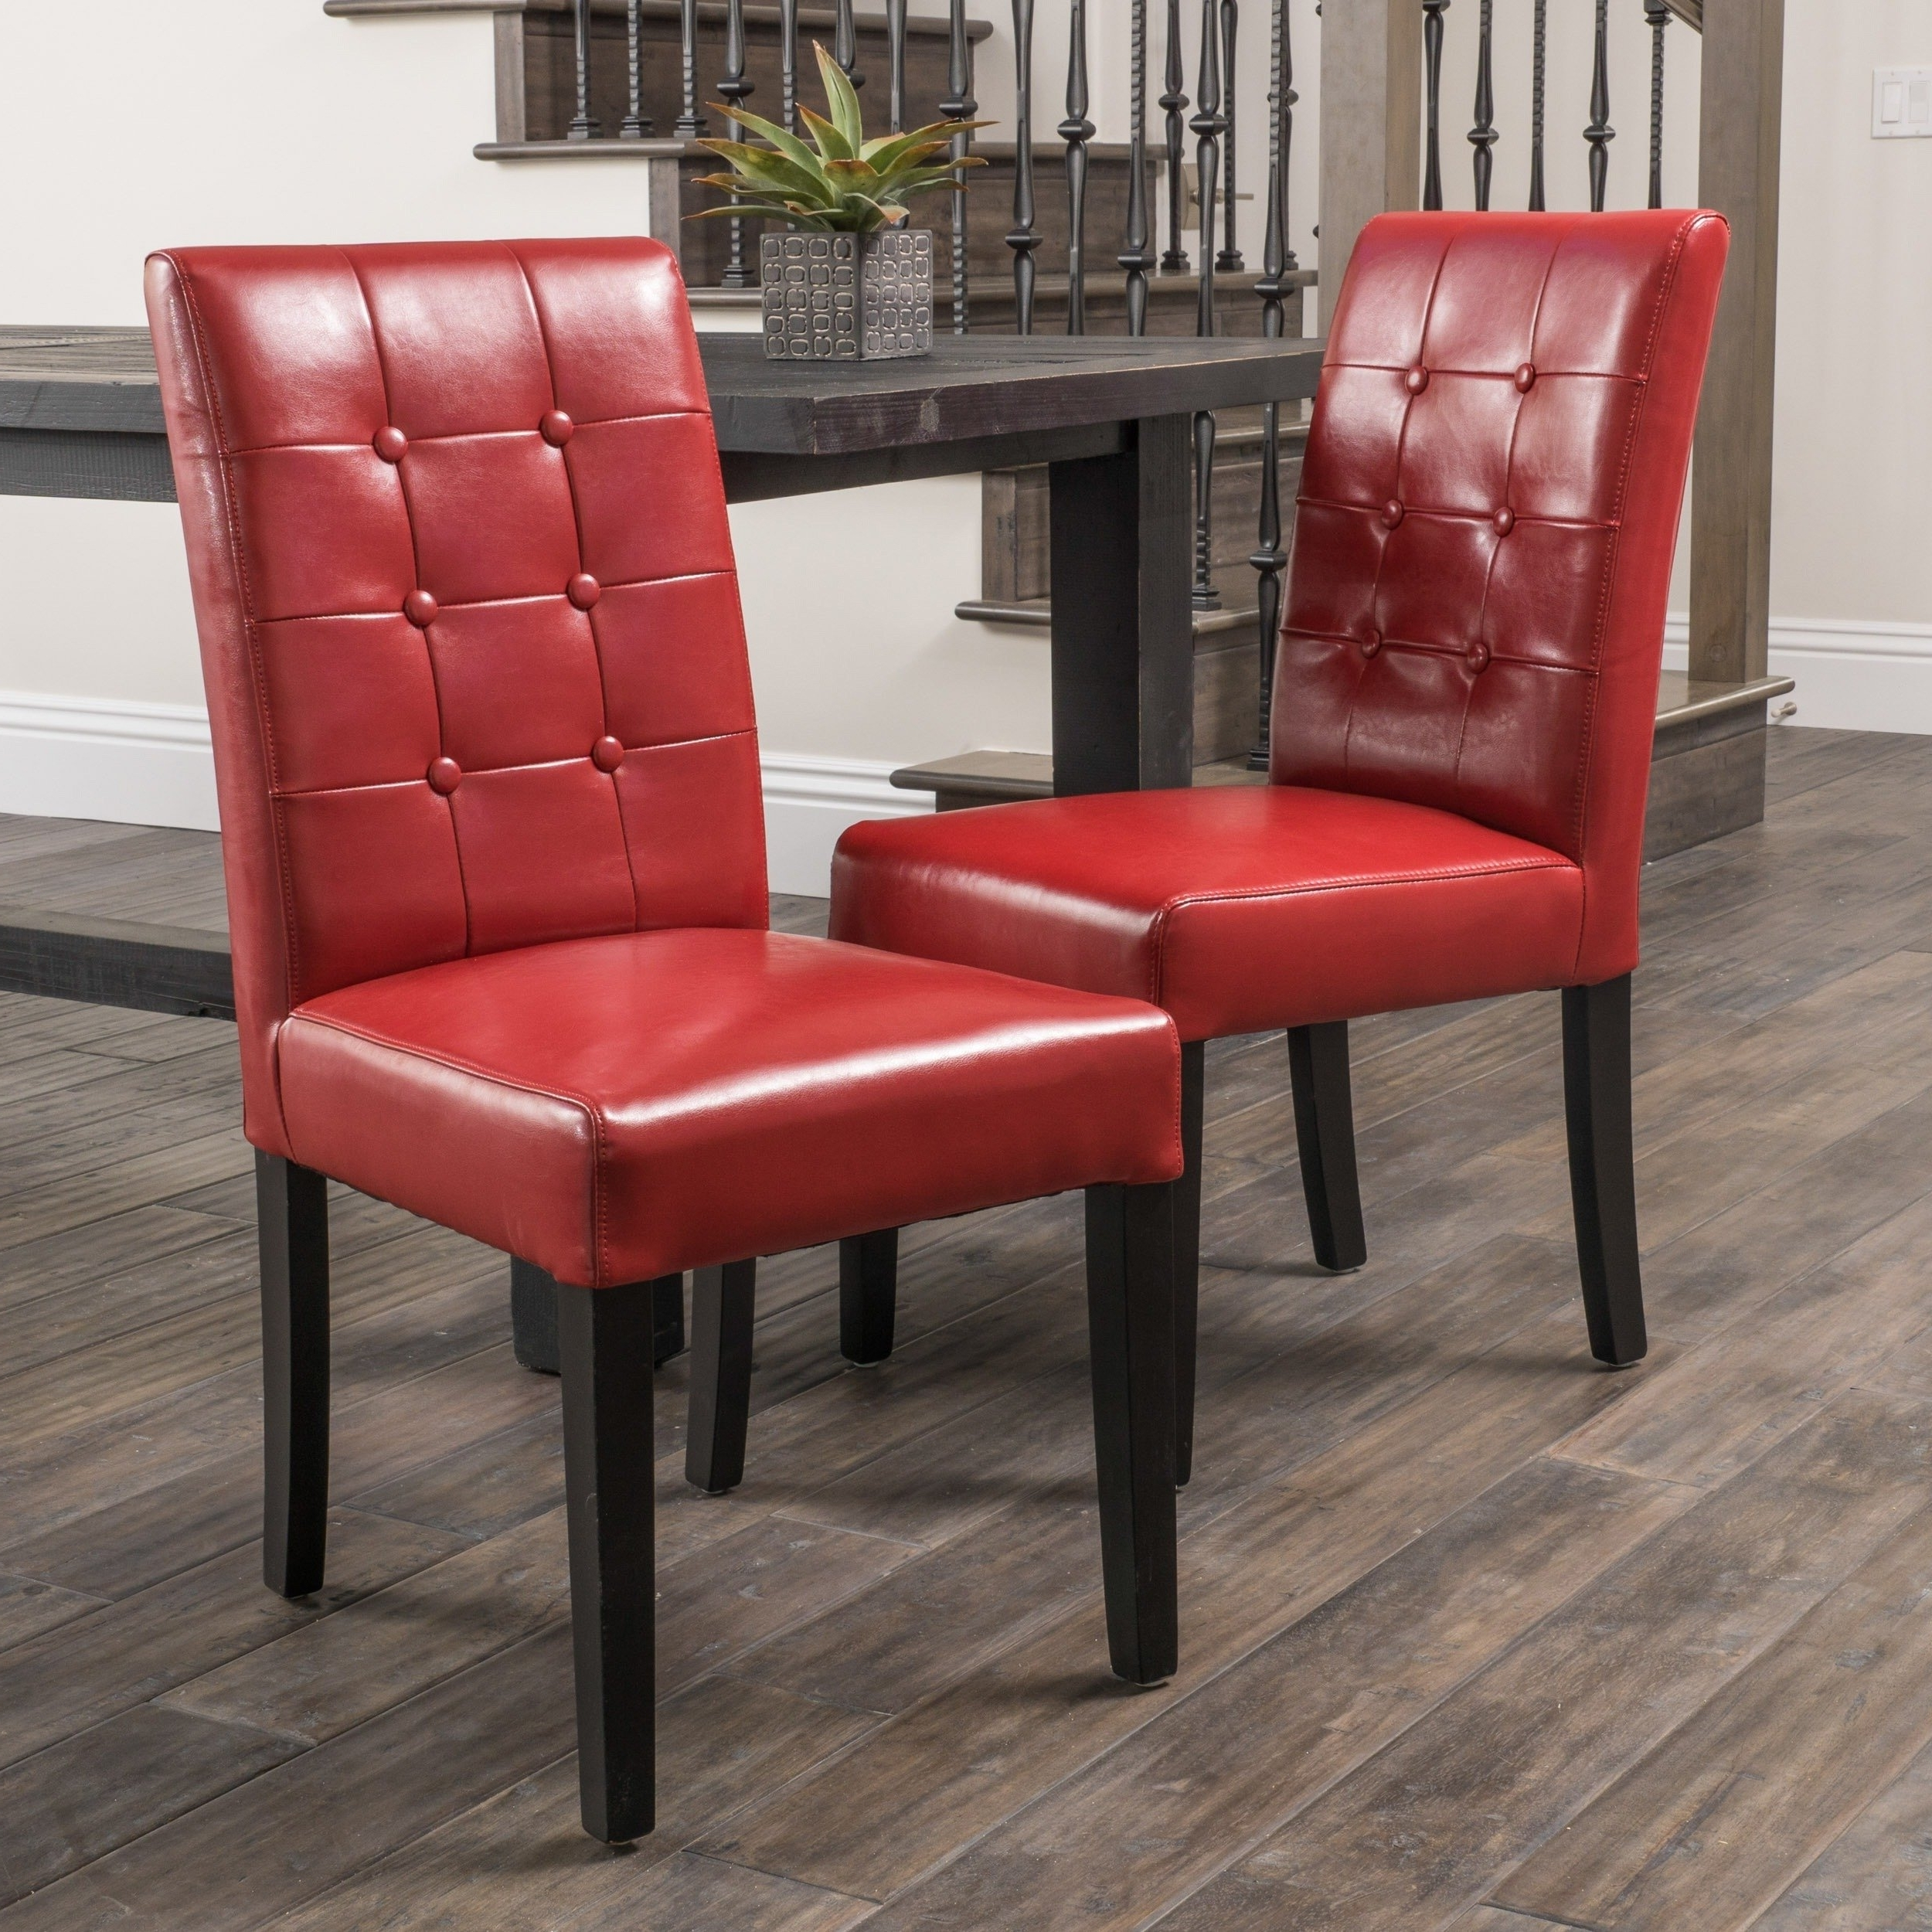 Latest Shop Roland Red Bonded Leather Dining Chairschristopher Knight With Regard To Red Leather Dining Chairs (View 8 of 25)